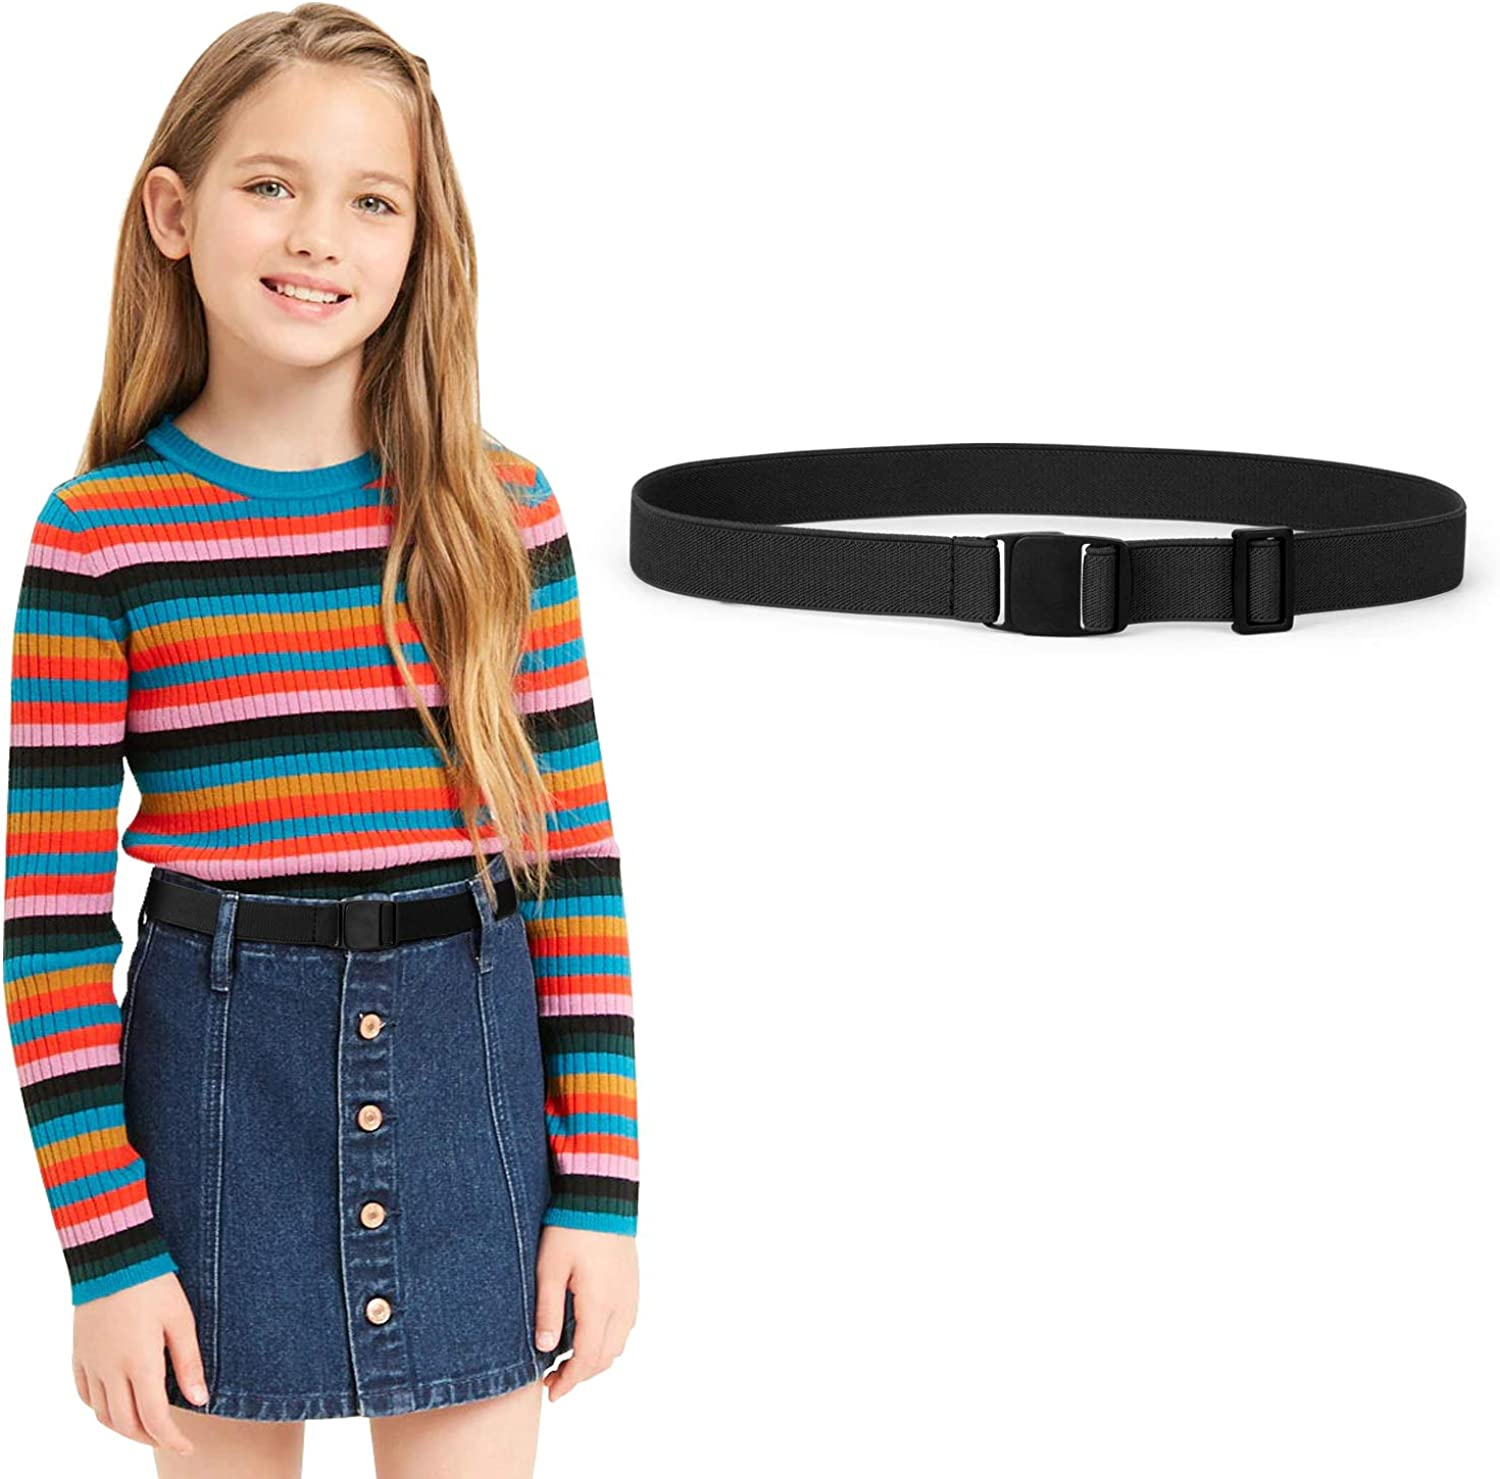 Amazon.com: JASGOOD Kids Nickel Free Adjustable Elastic Belts for Pants  Children Stretch Belts for Boys and Girls(Suit for waist size below 26Inch,  02-Black): Clothing